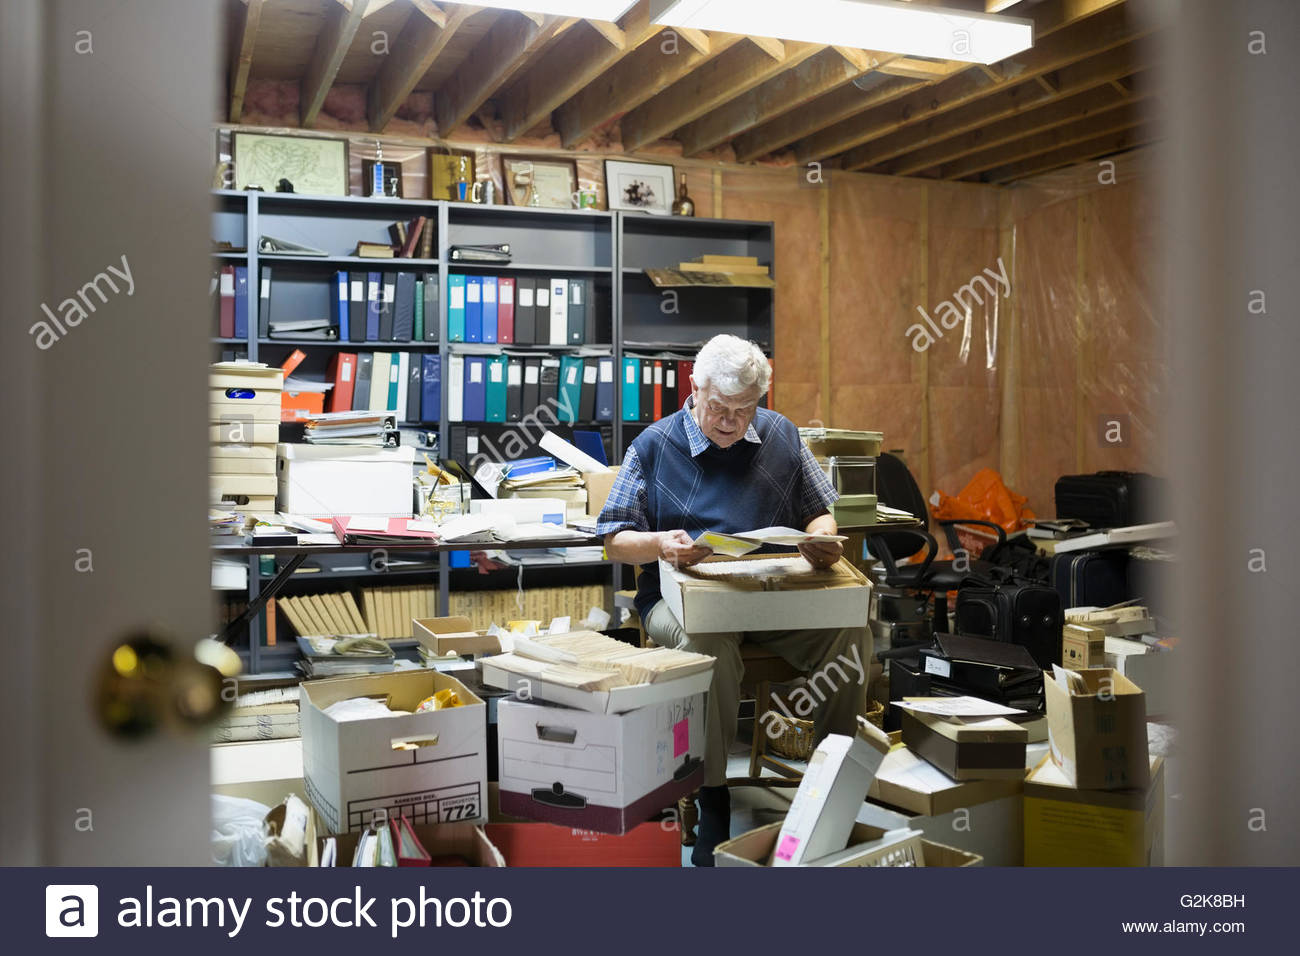 Senior man reading old letters in boxes - Stock Image